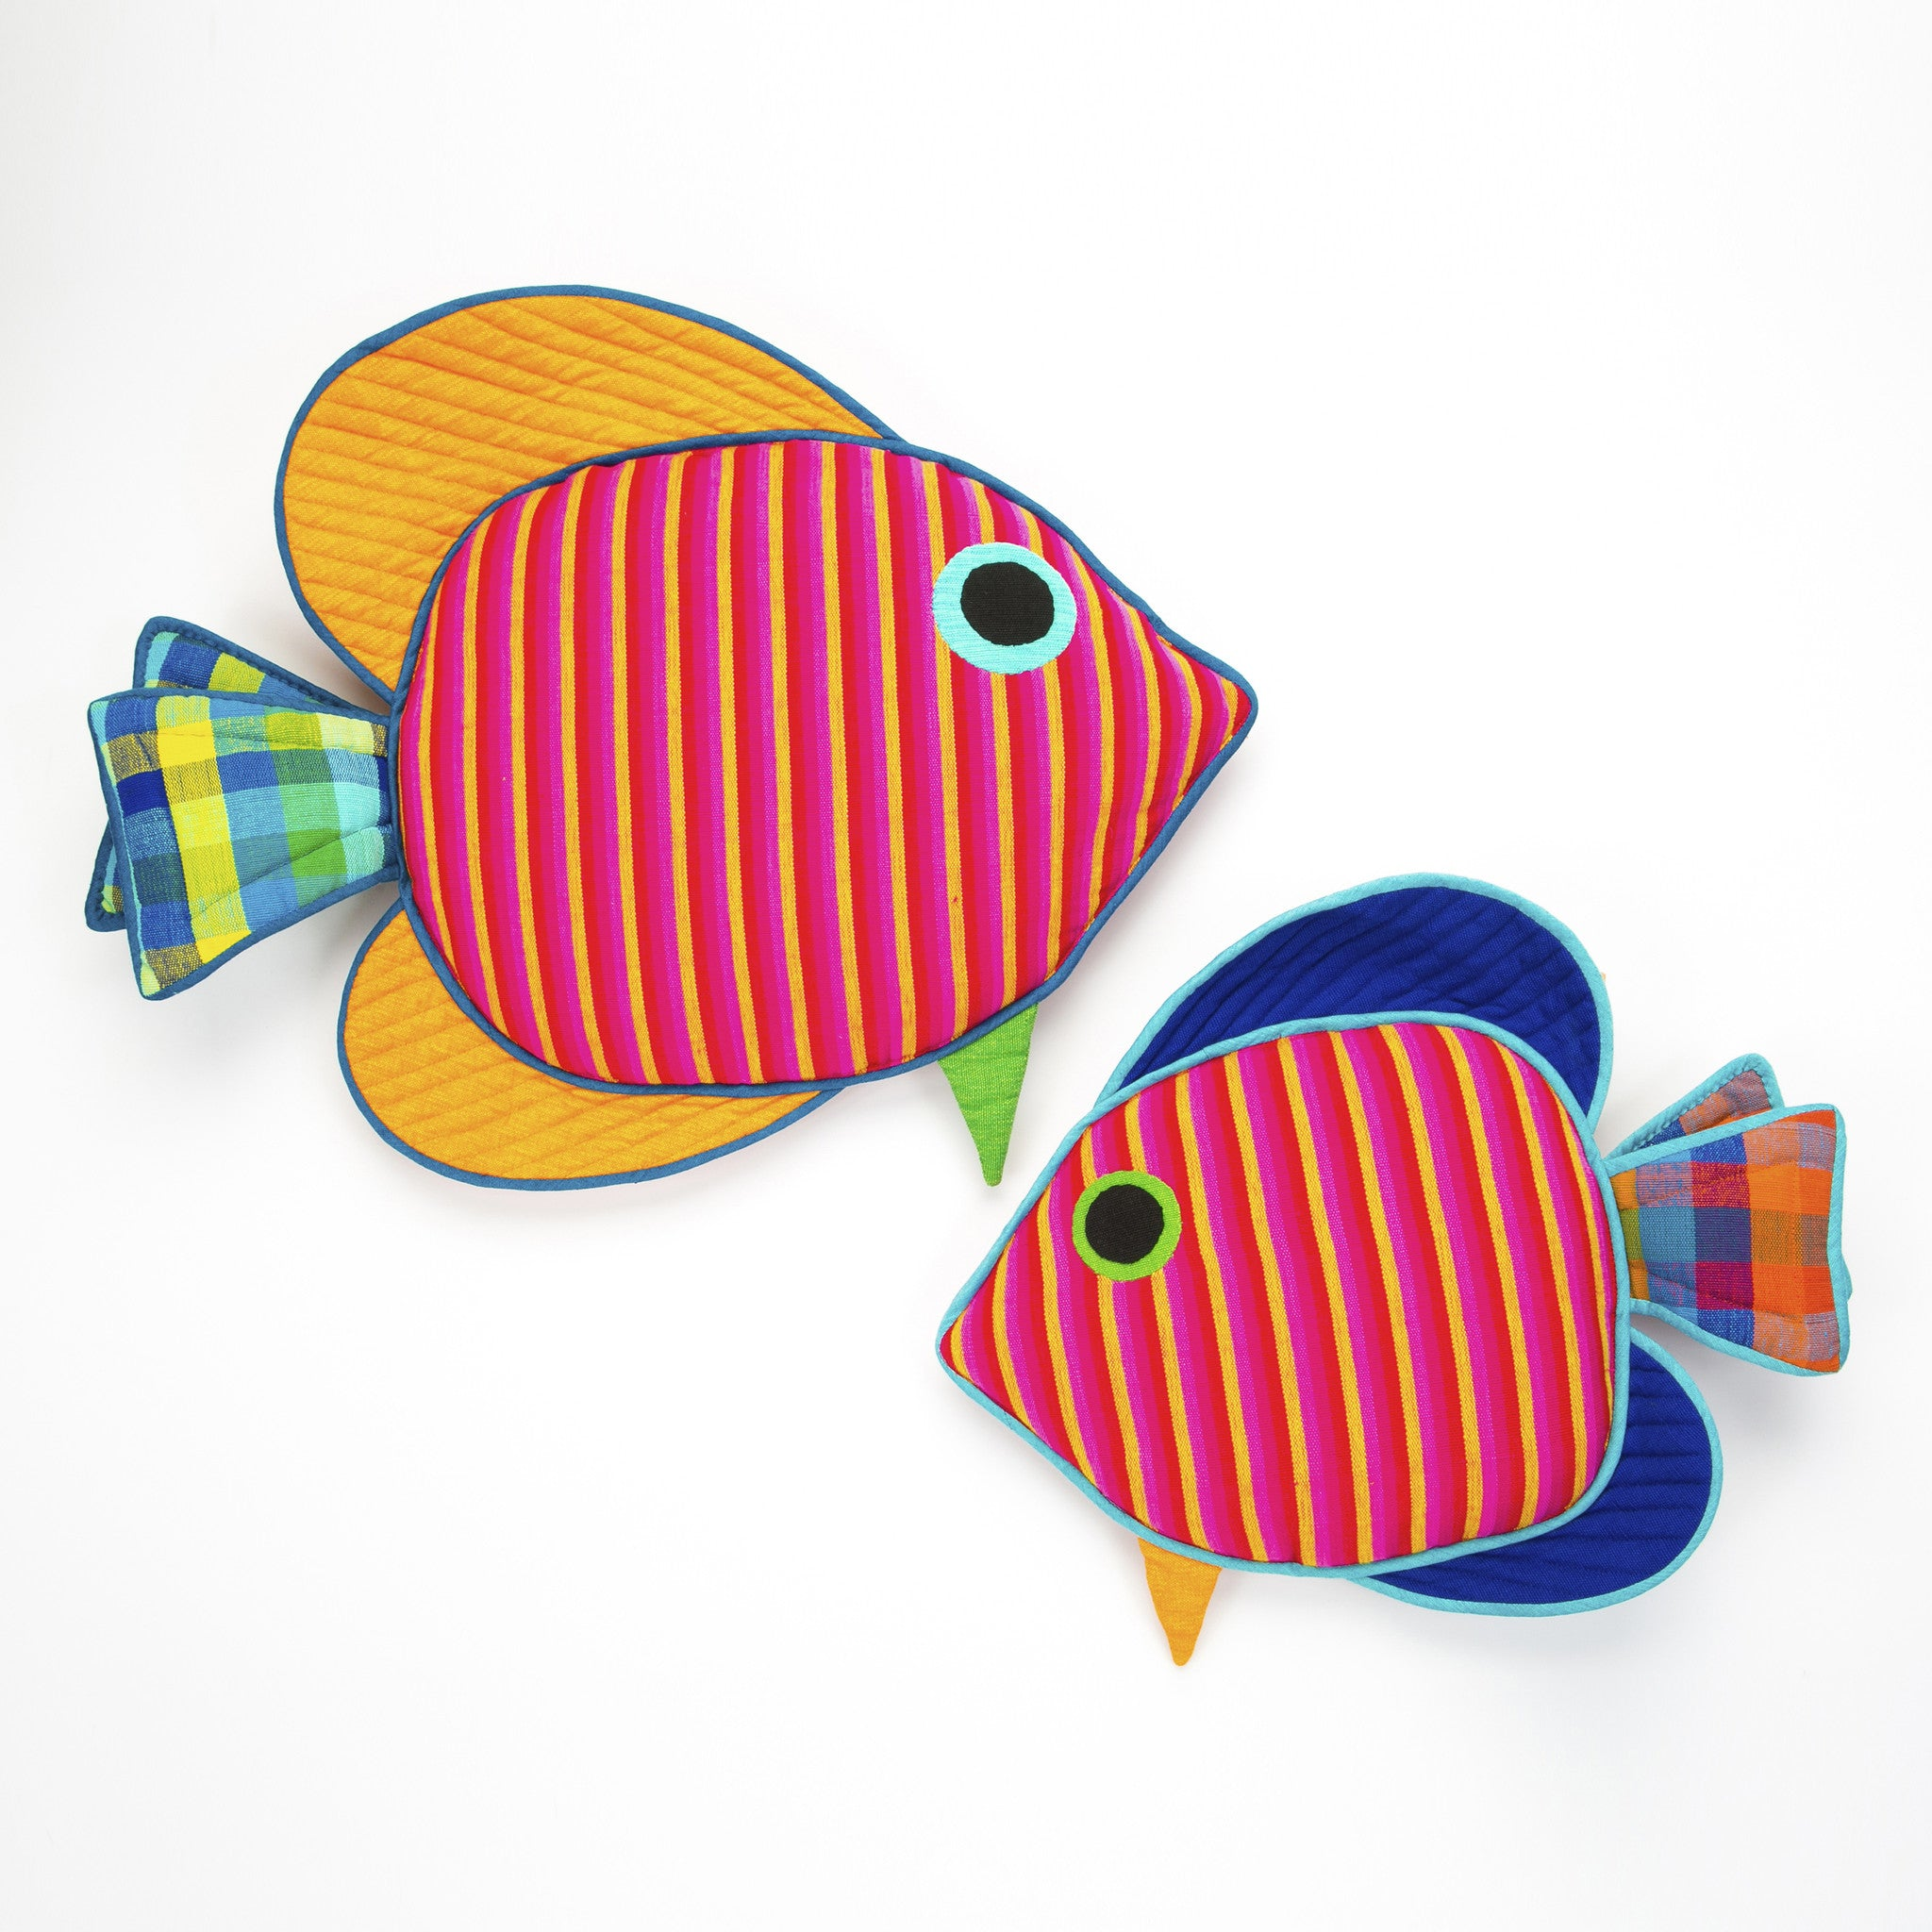 Abigail, the Sail Fin Fish (small & large sizes)